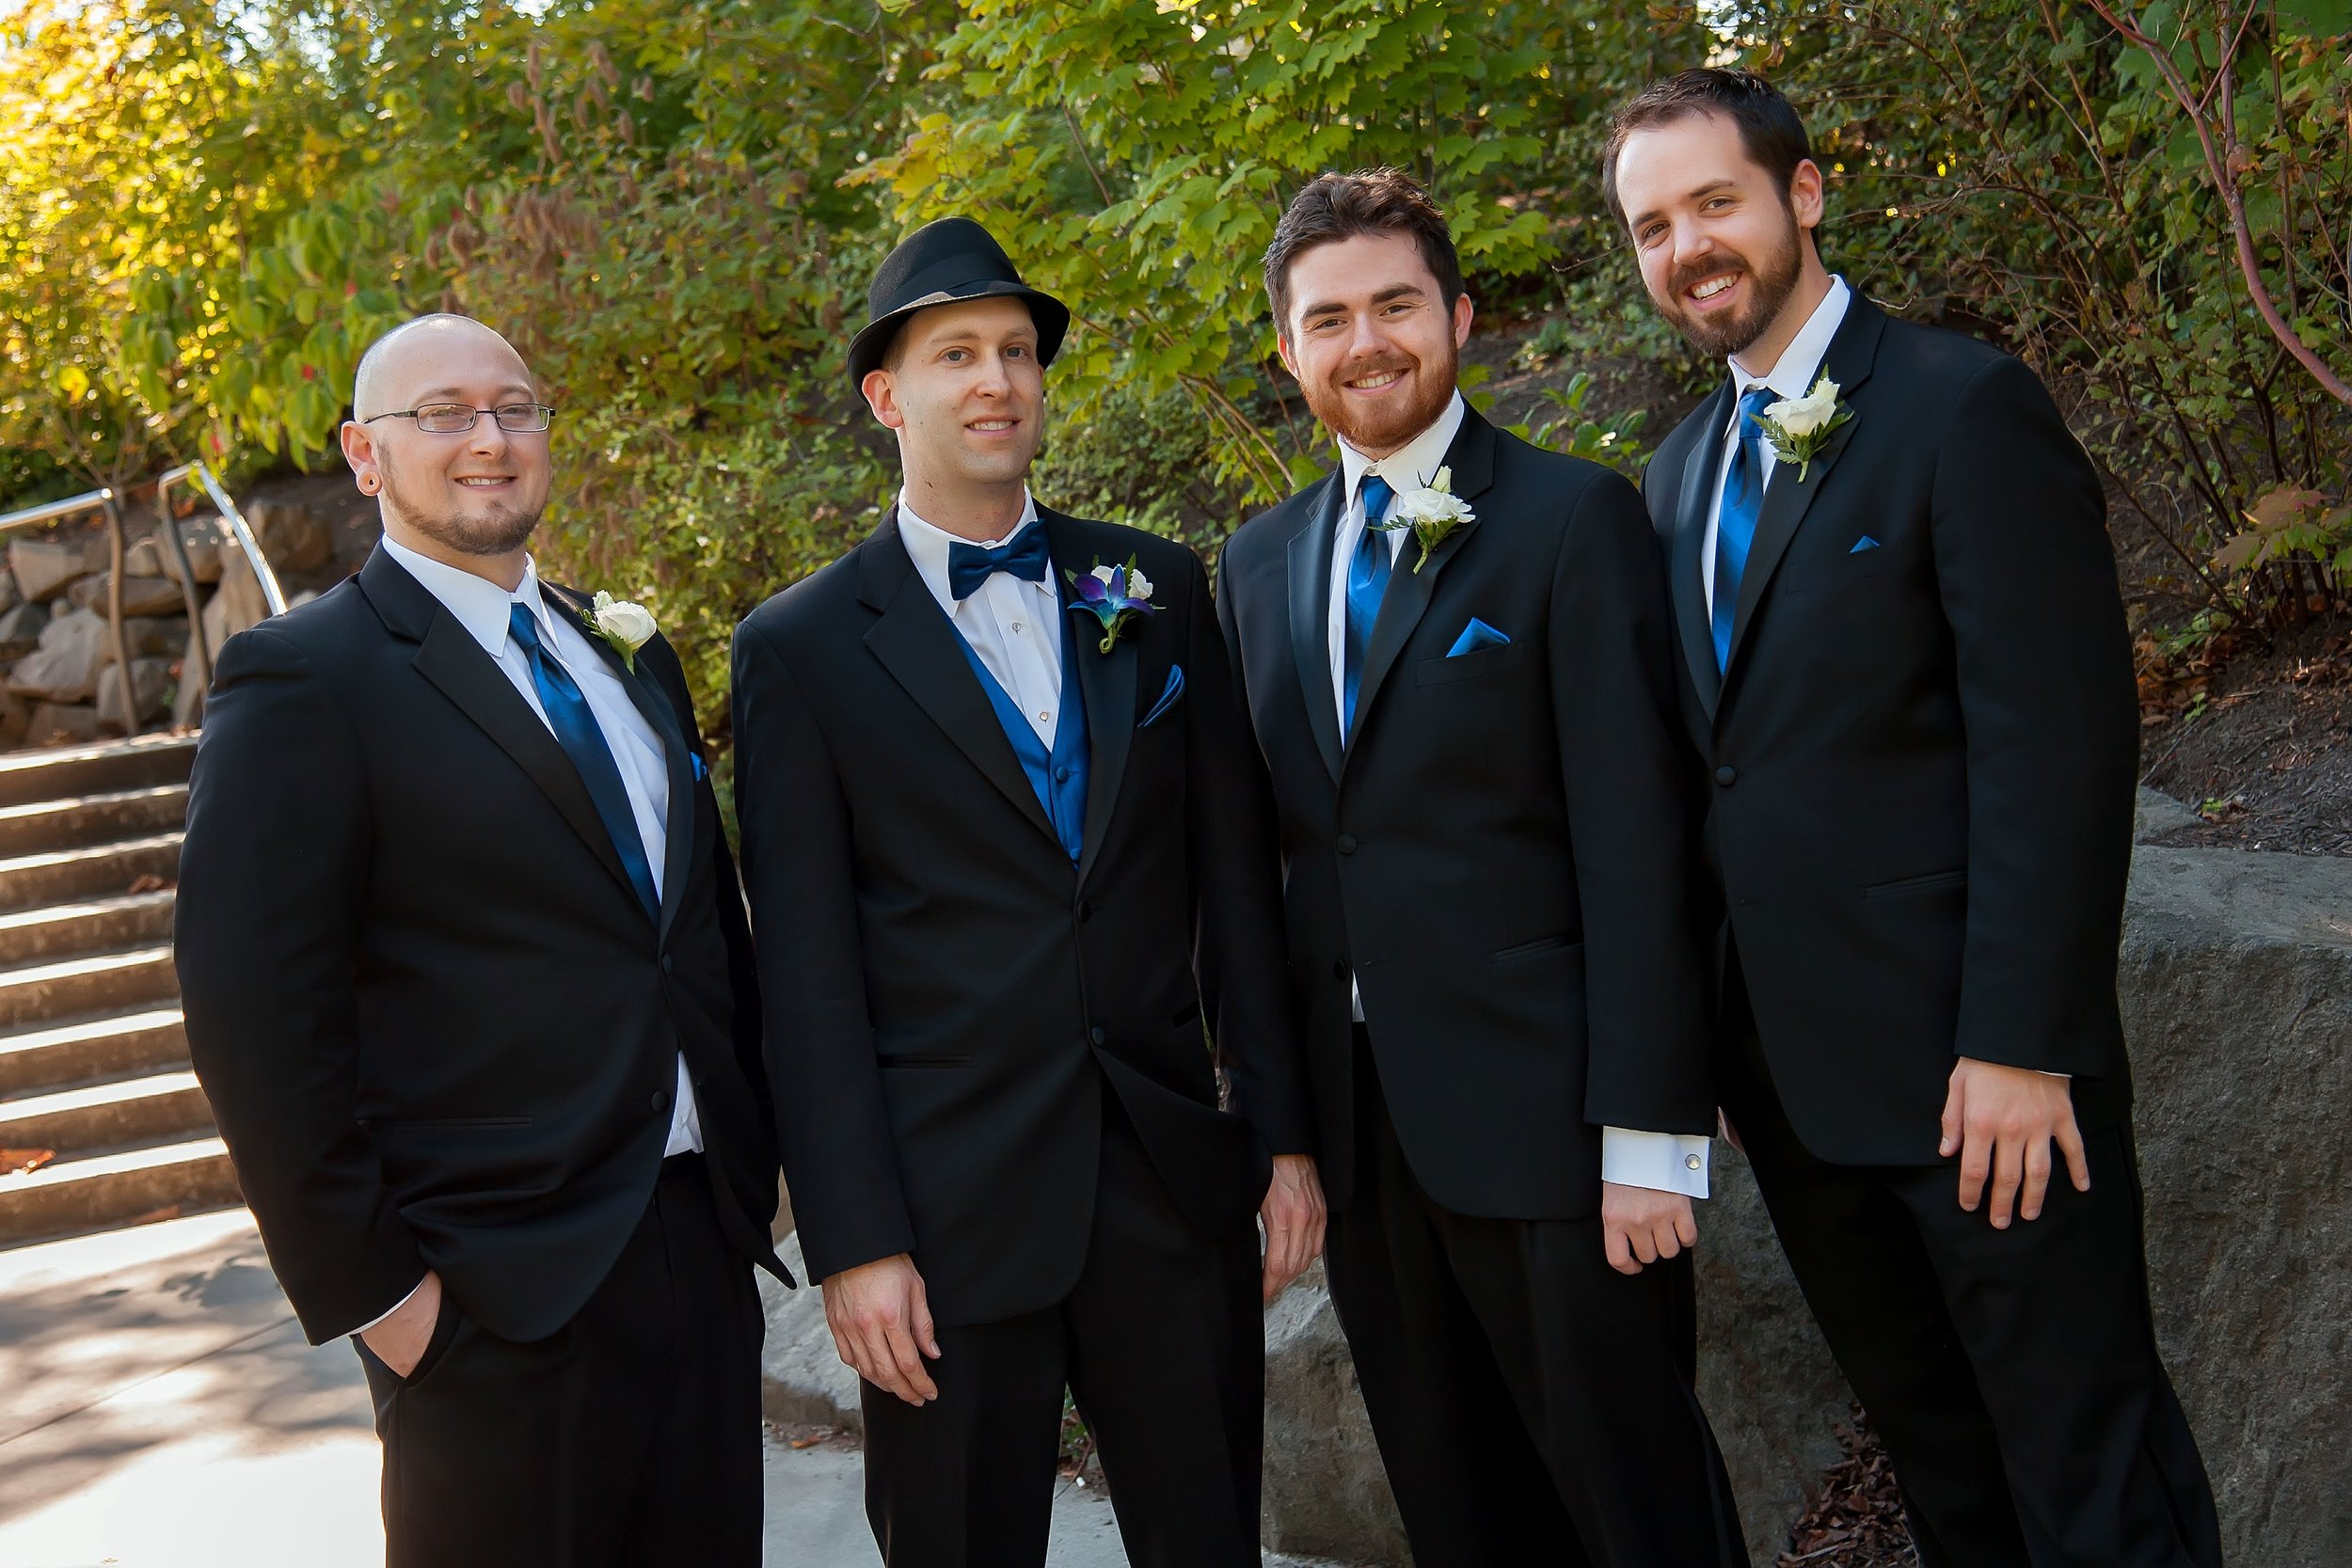 Groom & Groomsmen in a Line.jpg